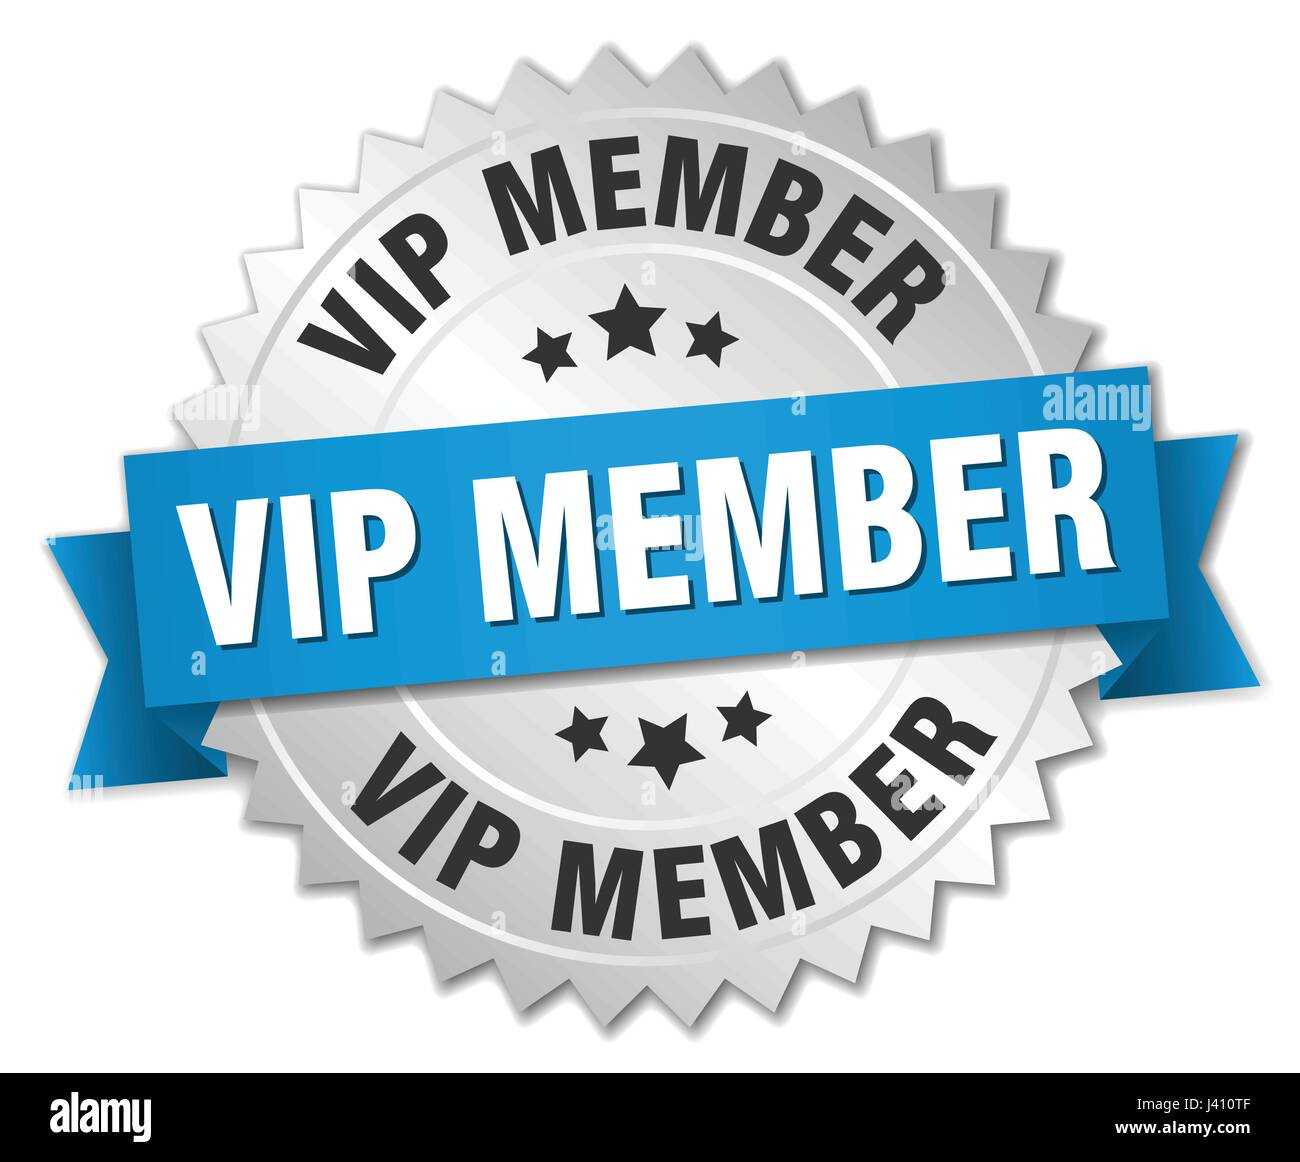 vip member round isolated silver badge - Stock Image